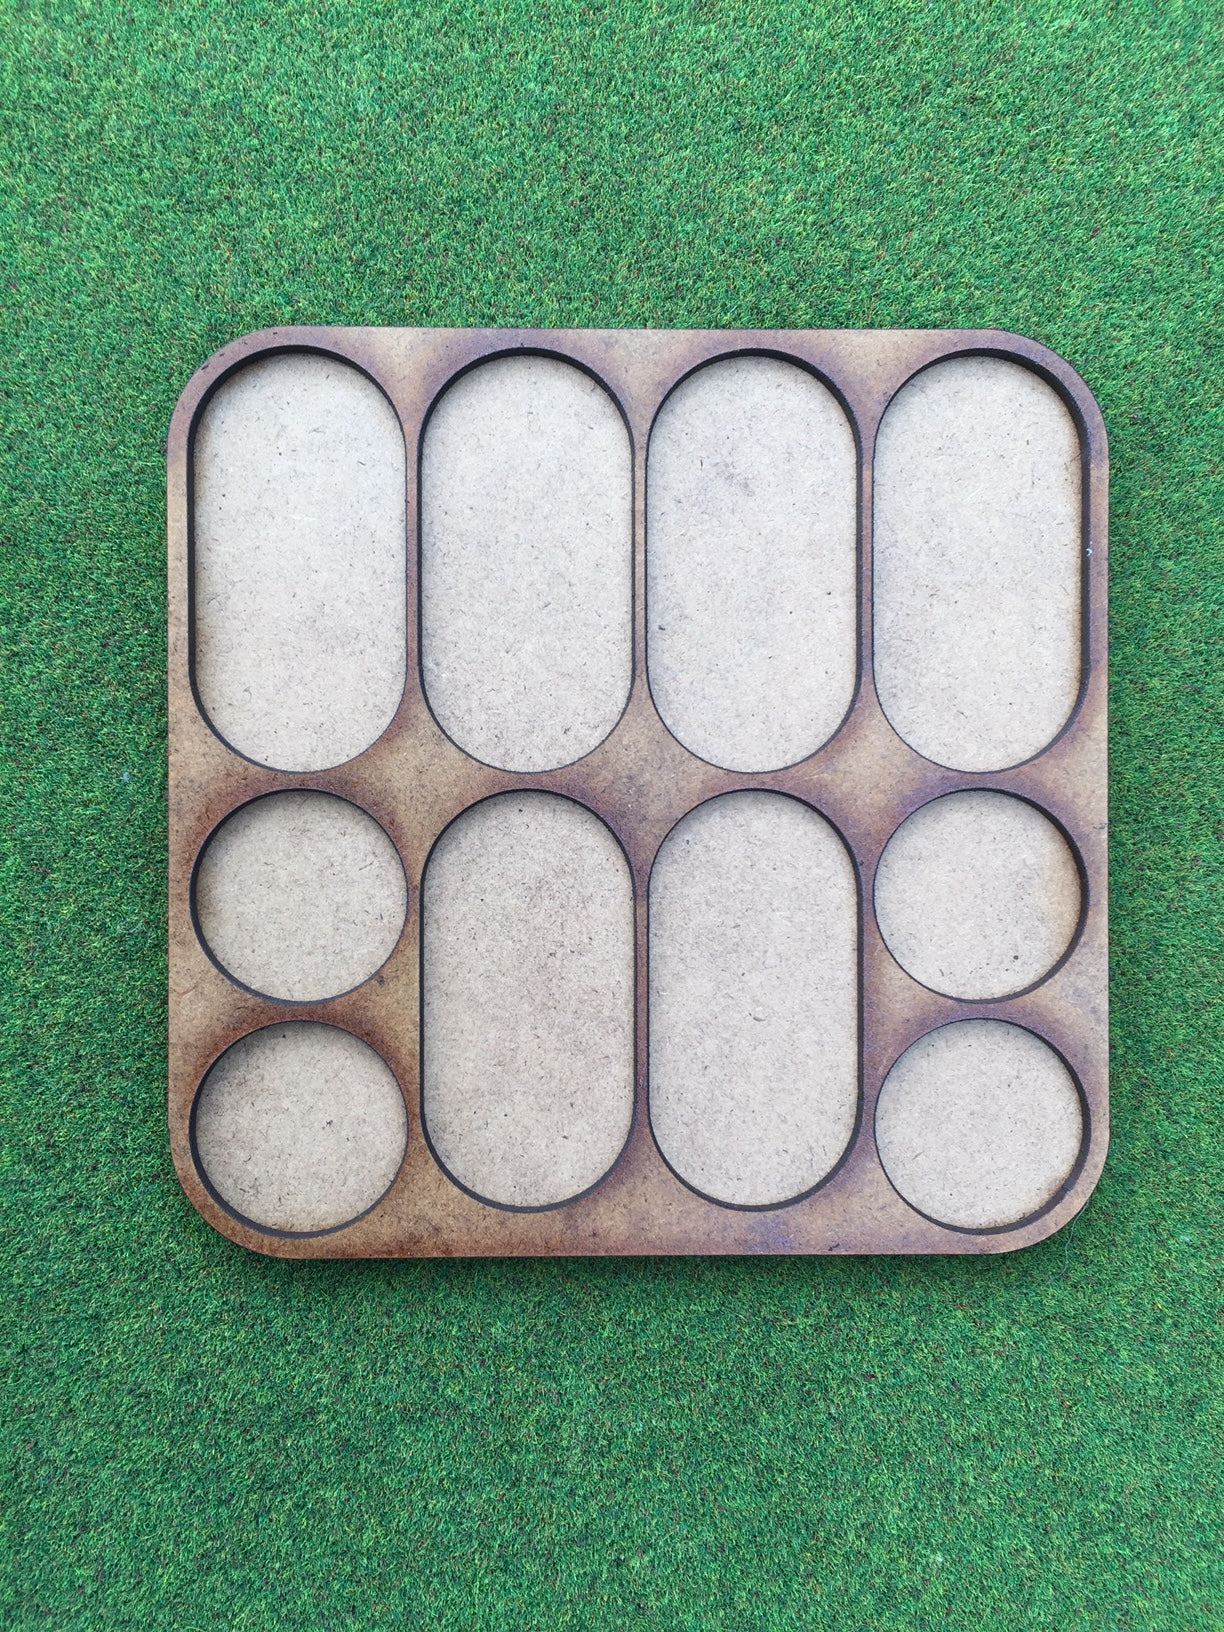 Foot Cavalry Movement Tray (25mm pill bases & 25mm round) 6 horse 4 foot